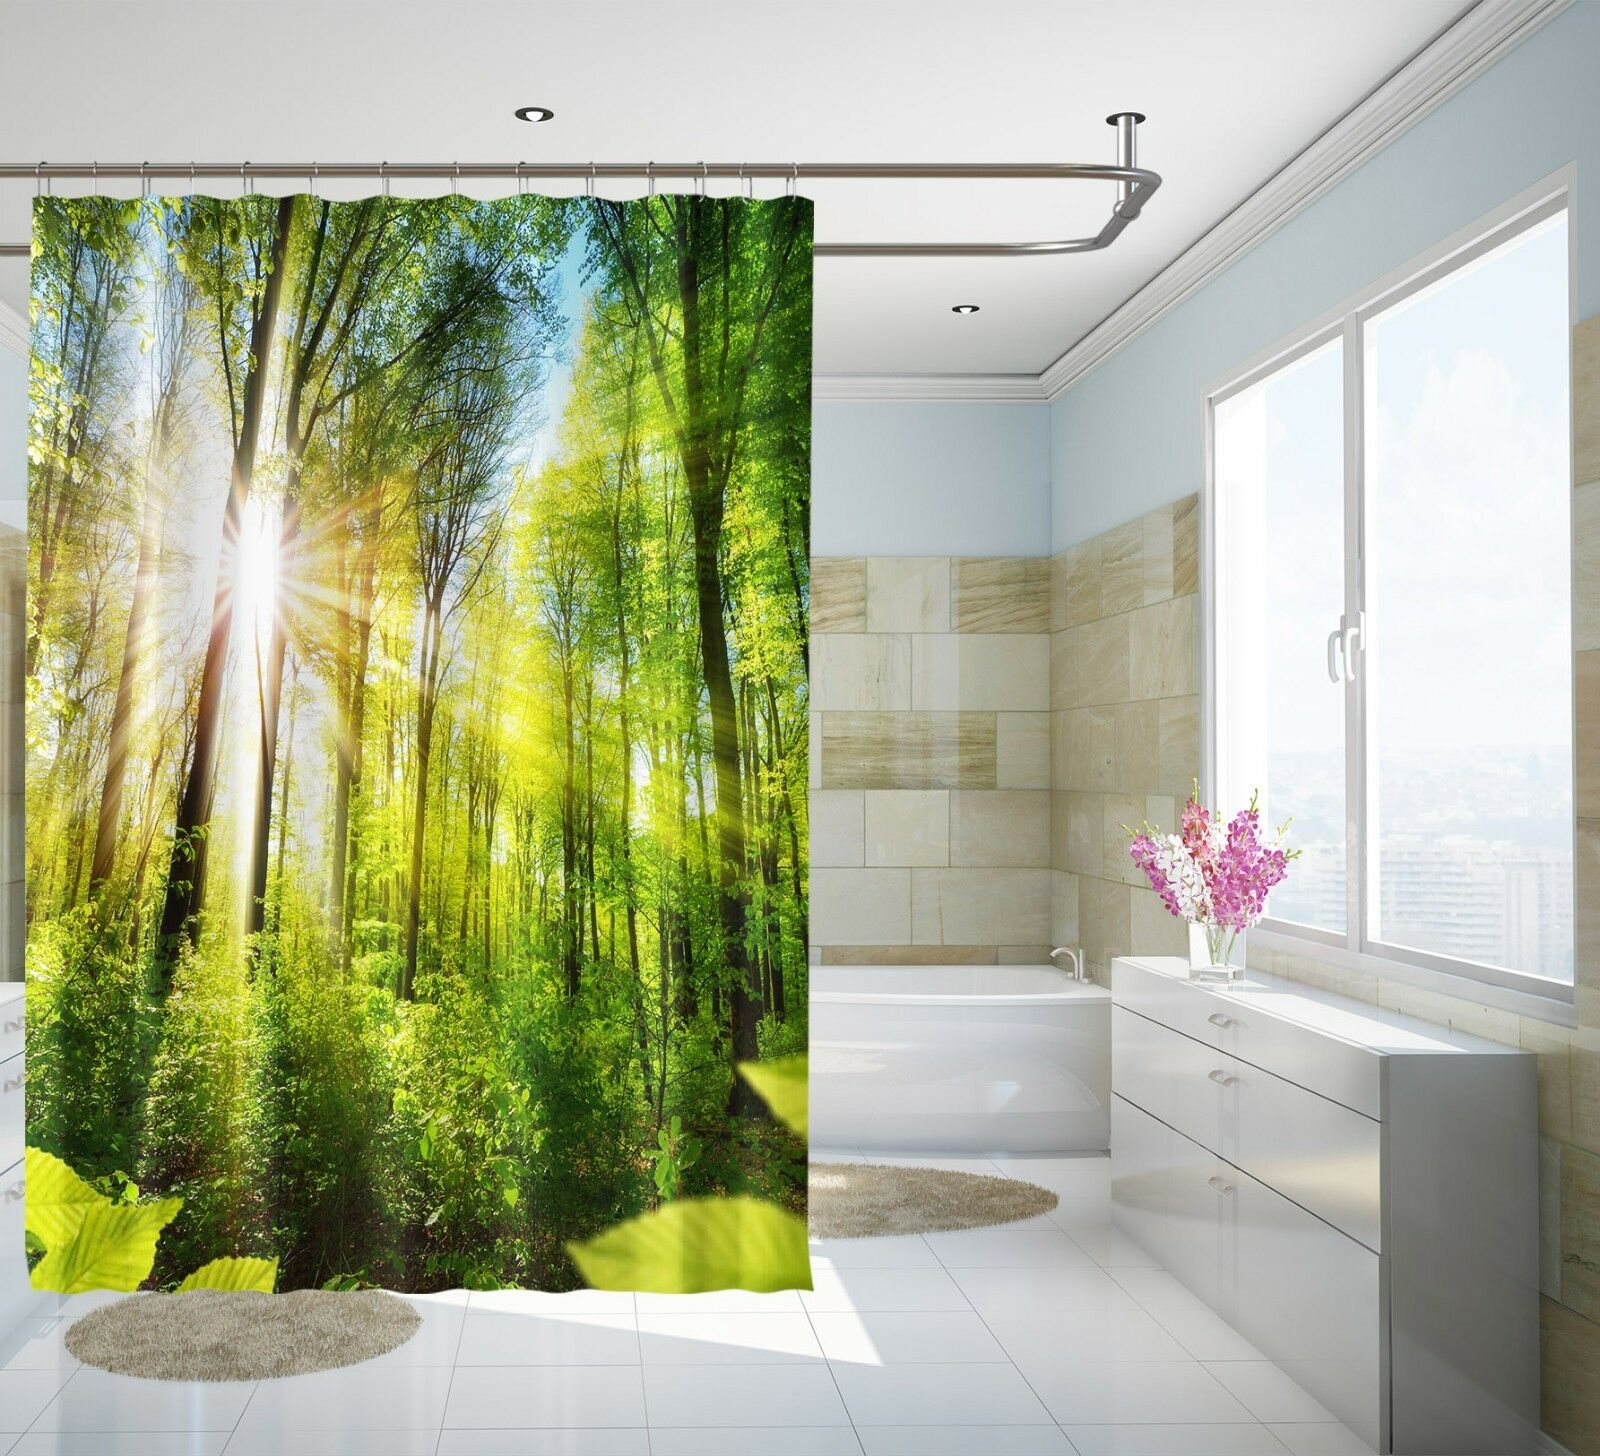 3D Sonne Wald 31 Duschvorhang Wasserdicht Faser Bad Daheim Windows Toilette DE